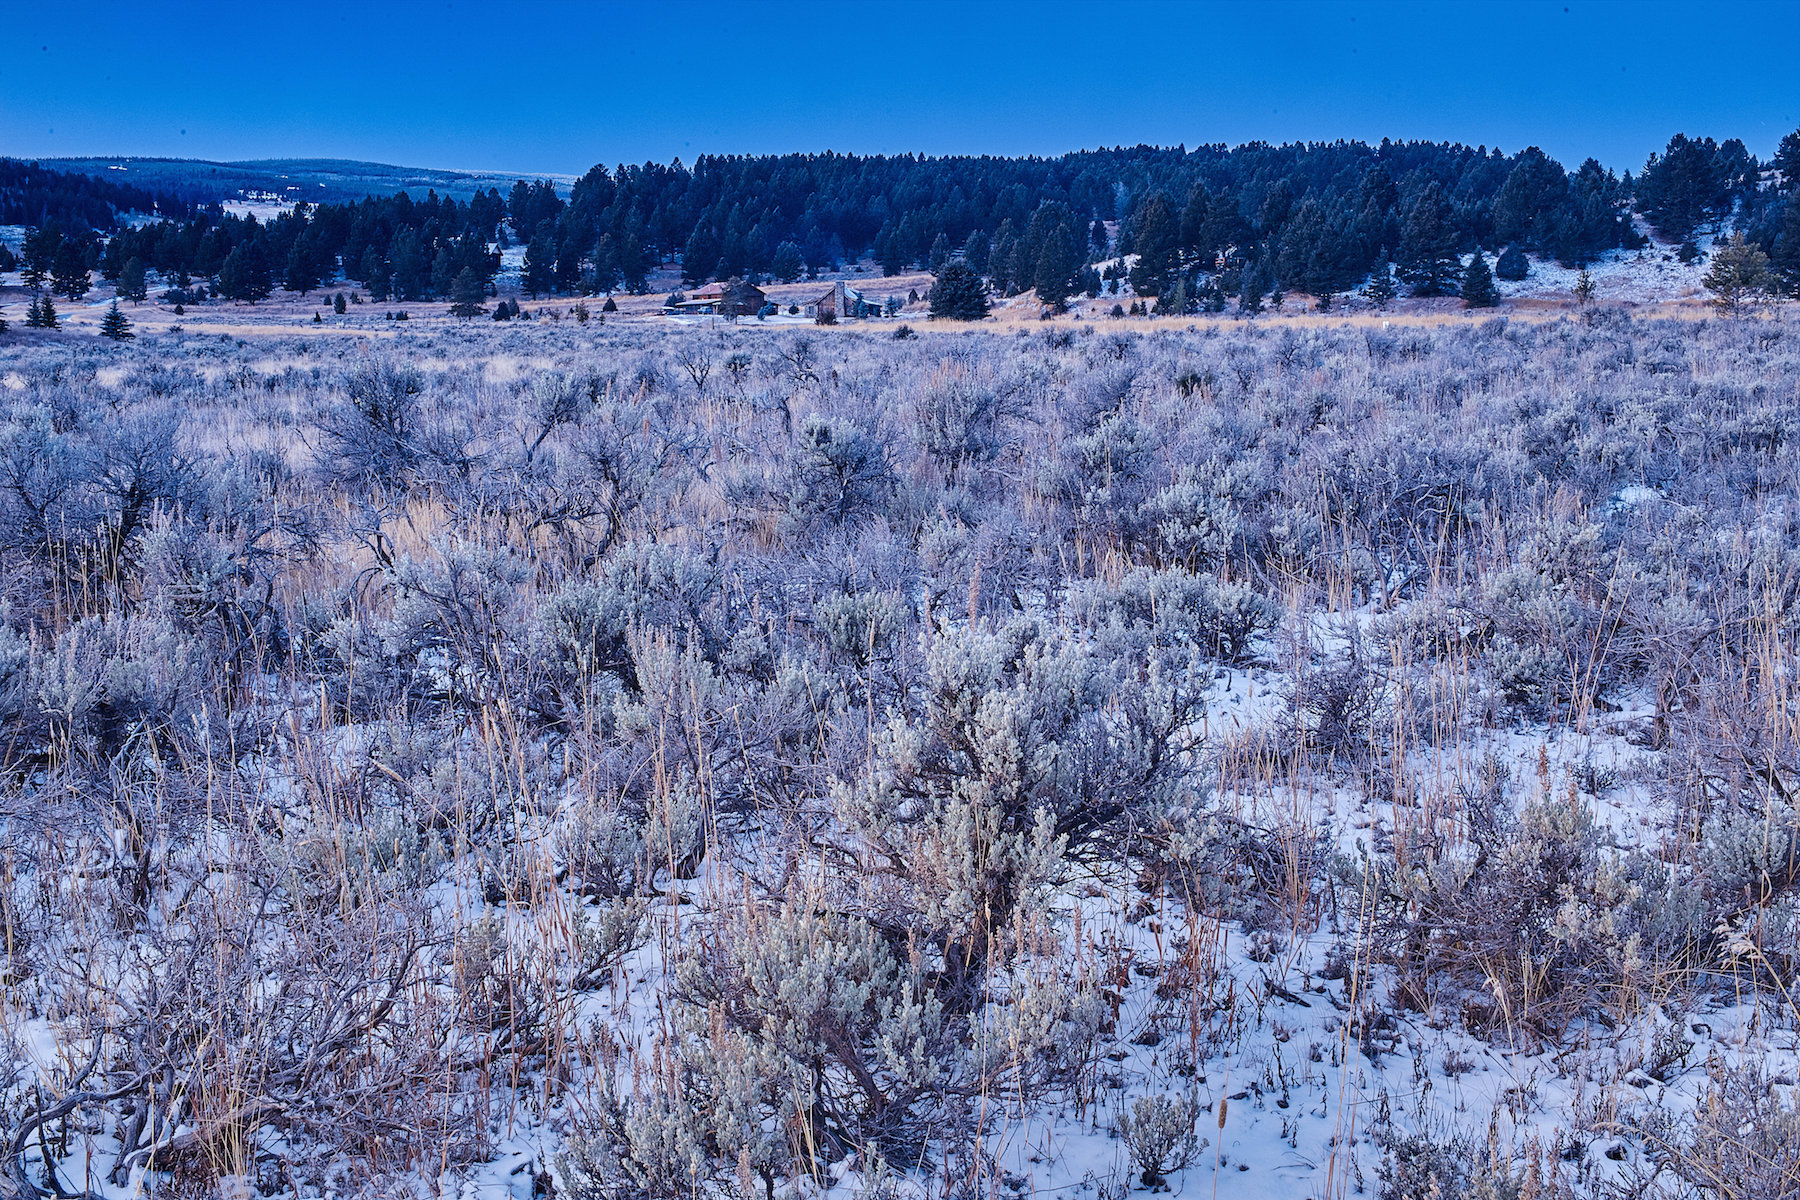 Land for Sale at Porcupine Park Lot 28 Windy Pass Trail Big Sky, Montana 59716 United States